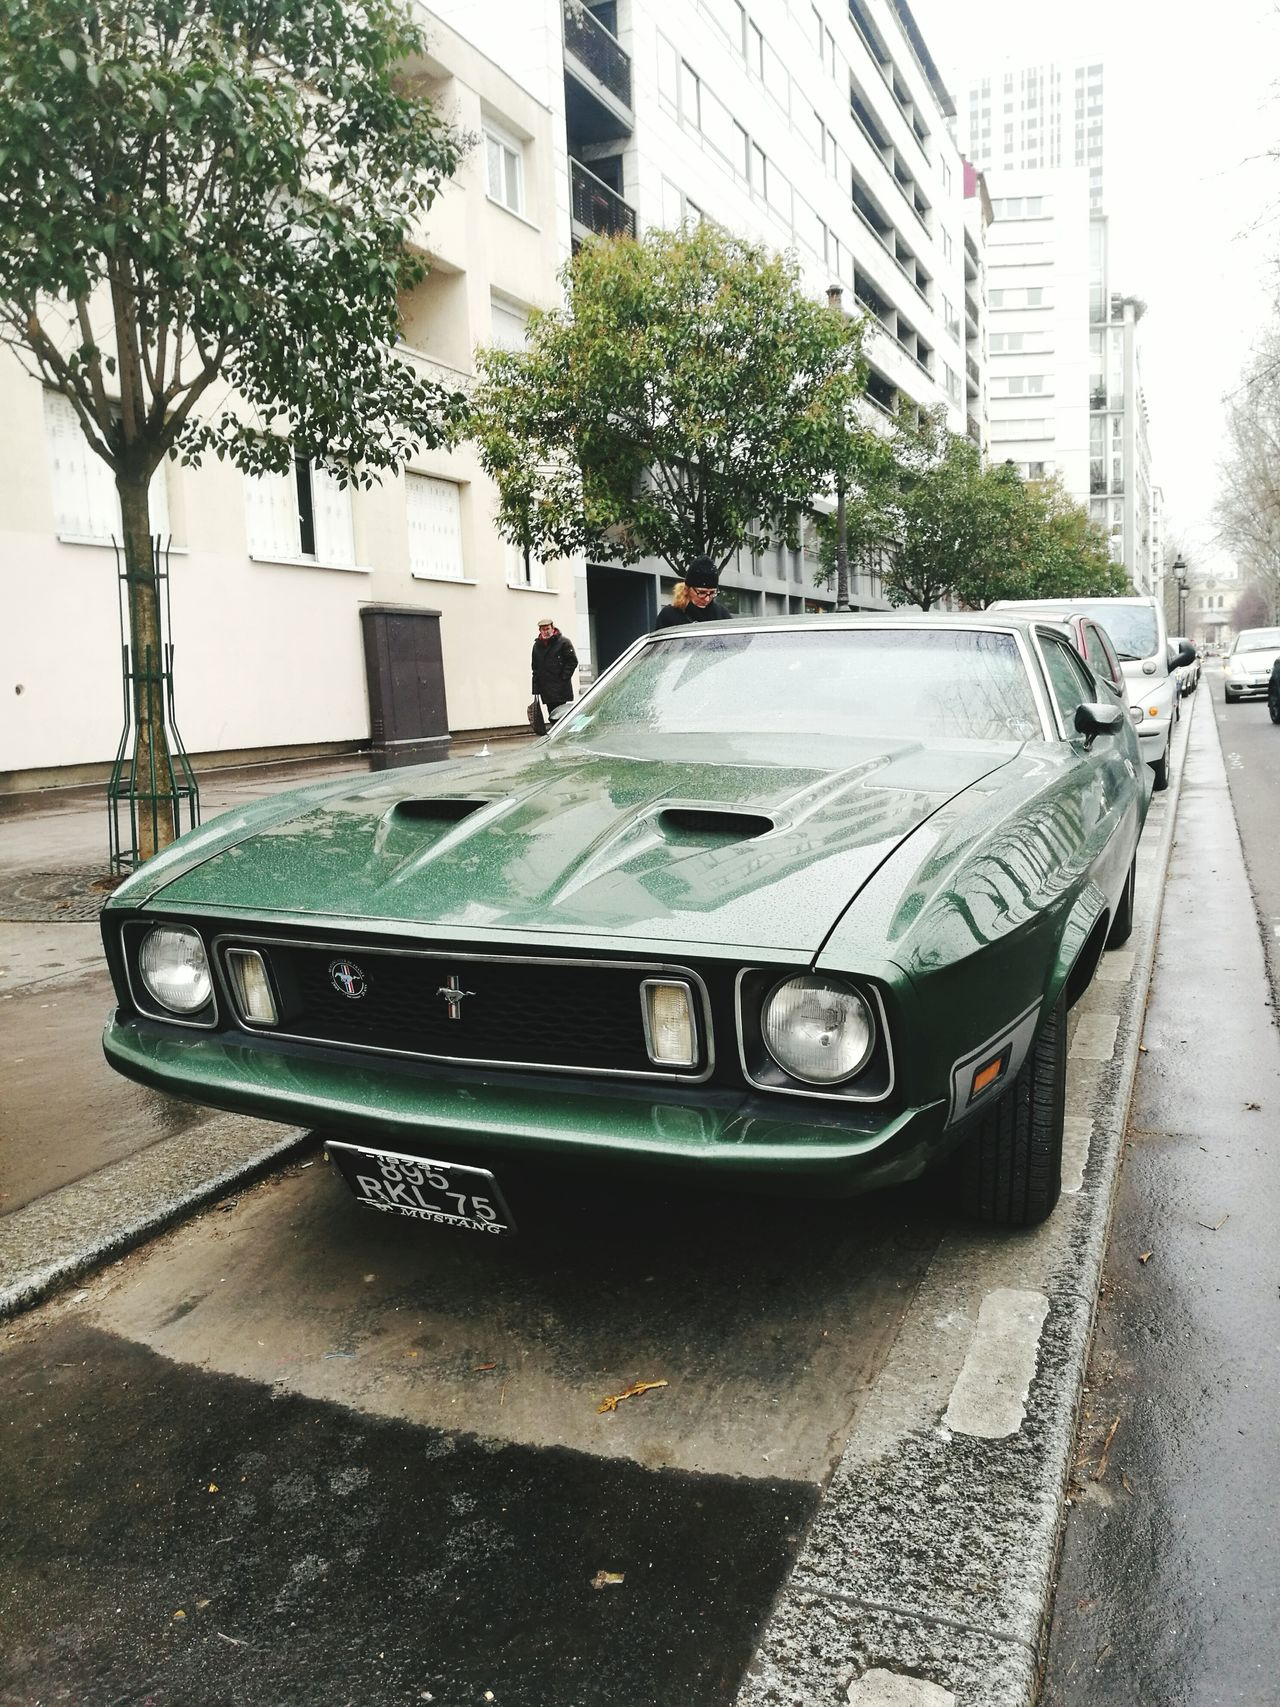 Fordmustang Ford Ford Mustang Mach 1 Ford Mustang Mach 1 Mustang General Motors  Paris Paris France Transportation Car City Outdoors Architecture No People Building Exterior Built Structure Day Huawei HuaweiP9